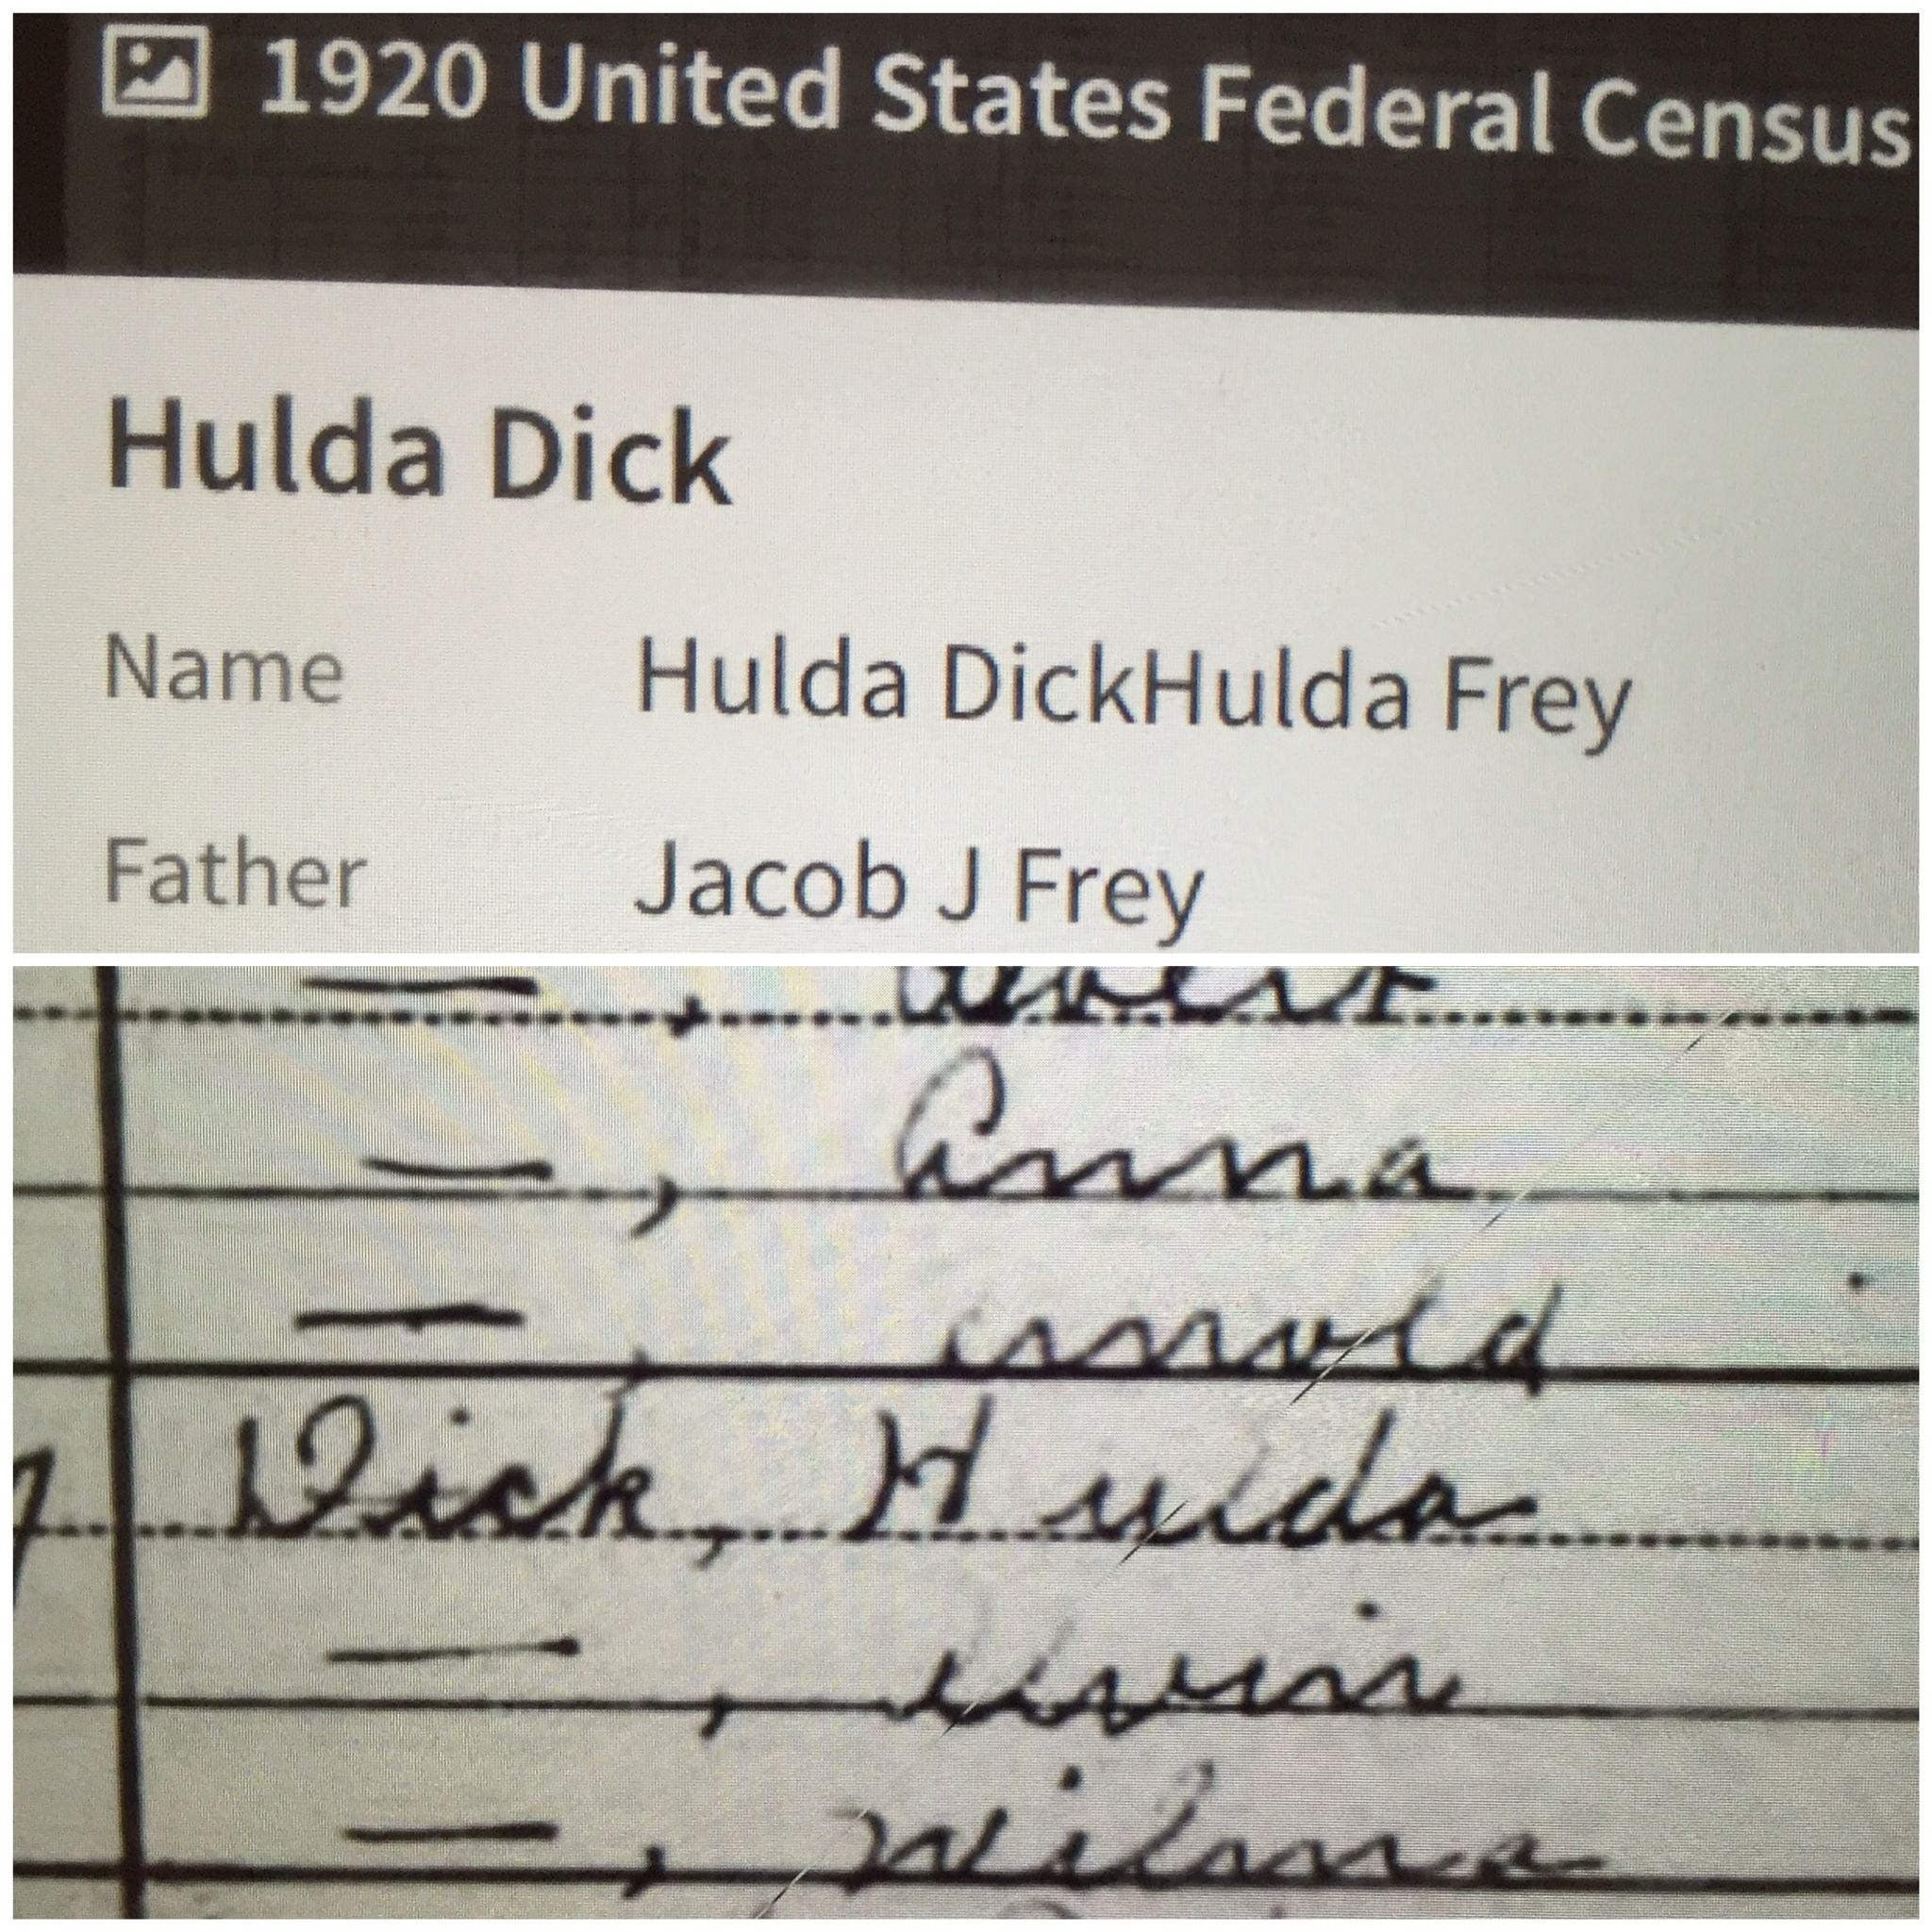 Researching my husband's genealogy and discovered his Great Aunt Hulda.